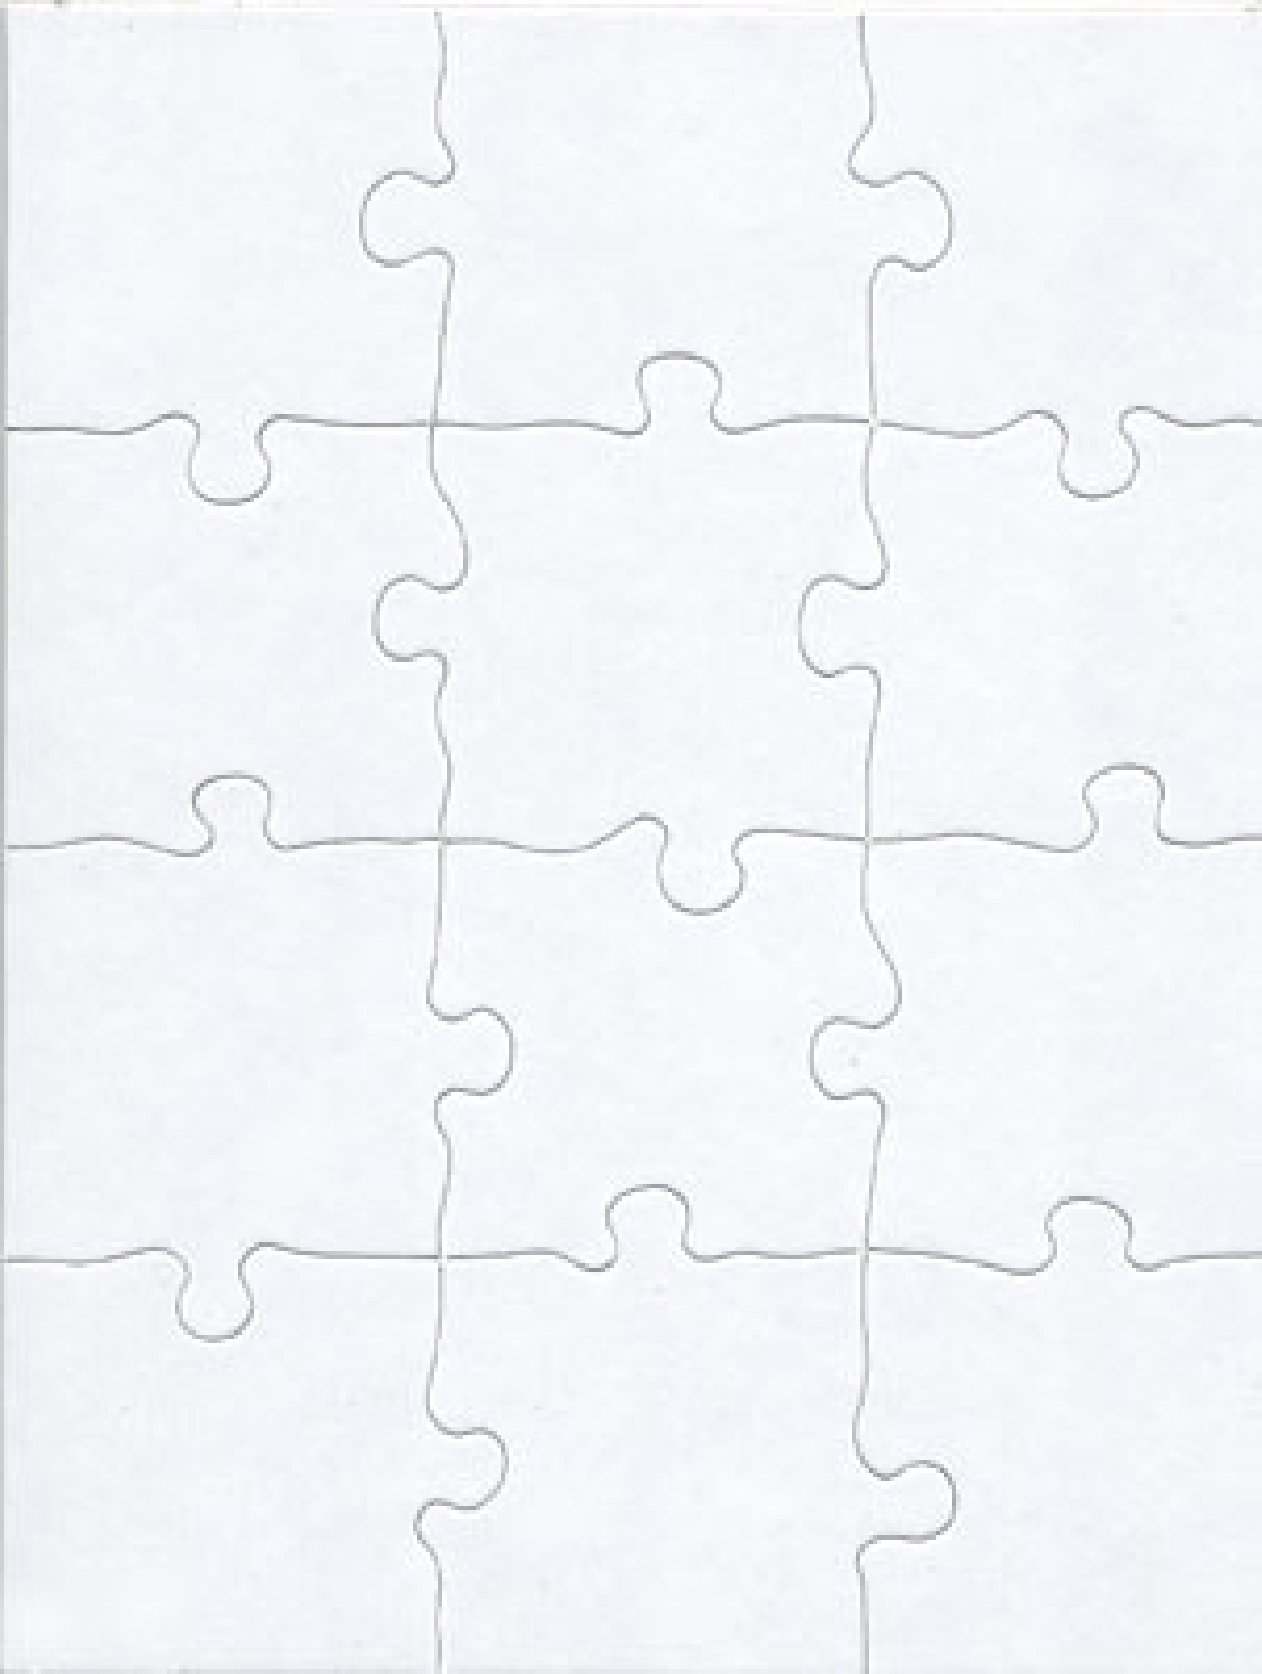 6 Blank Jigsaw Puzzle Template. 12 Pieces.